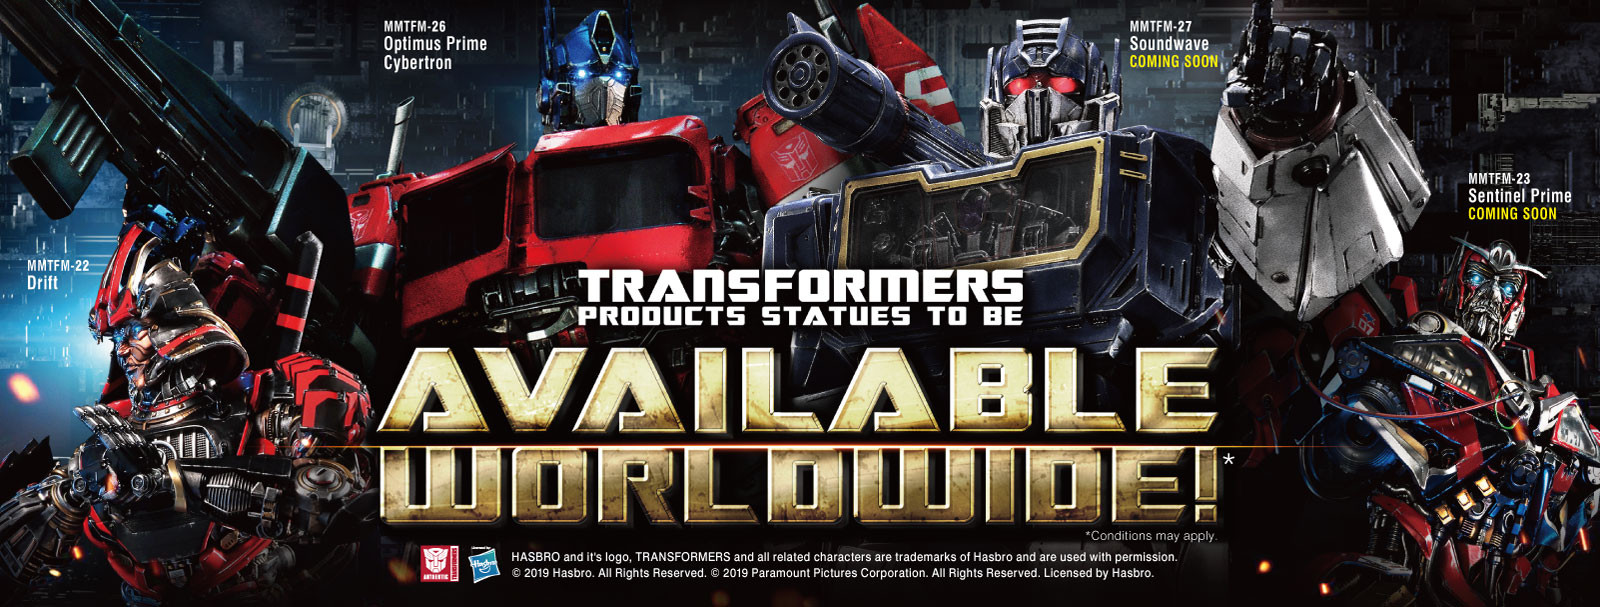 Transformers Statues are now available Worldwide!